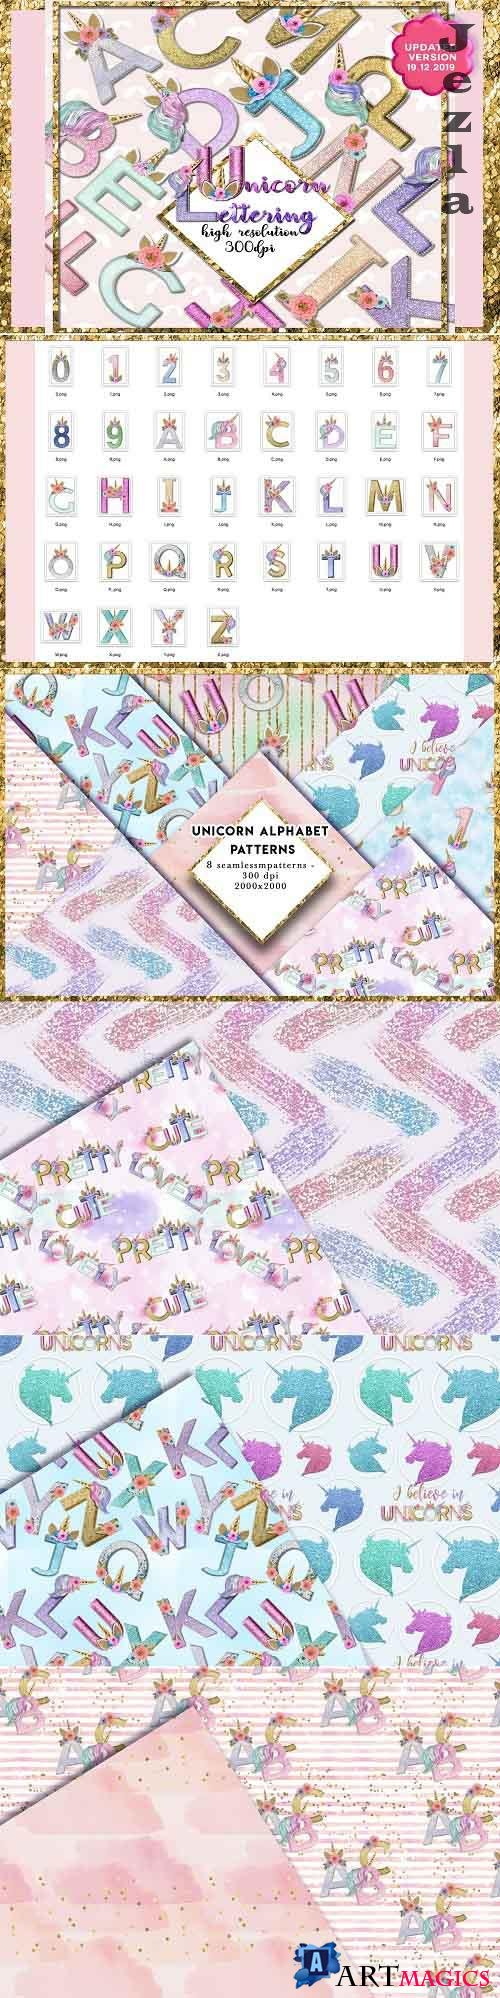 Unicorn Monogram Lettering and Seamless Pattern Bundle - 3315696 - 3944108